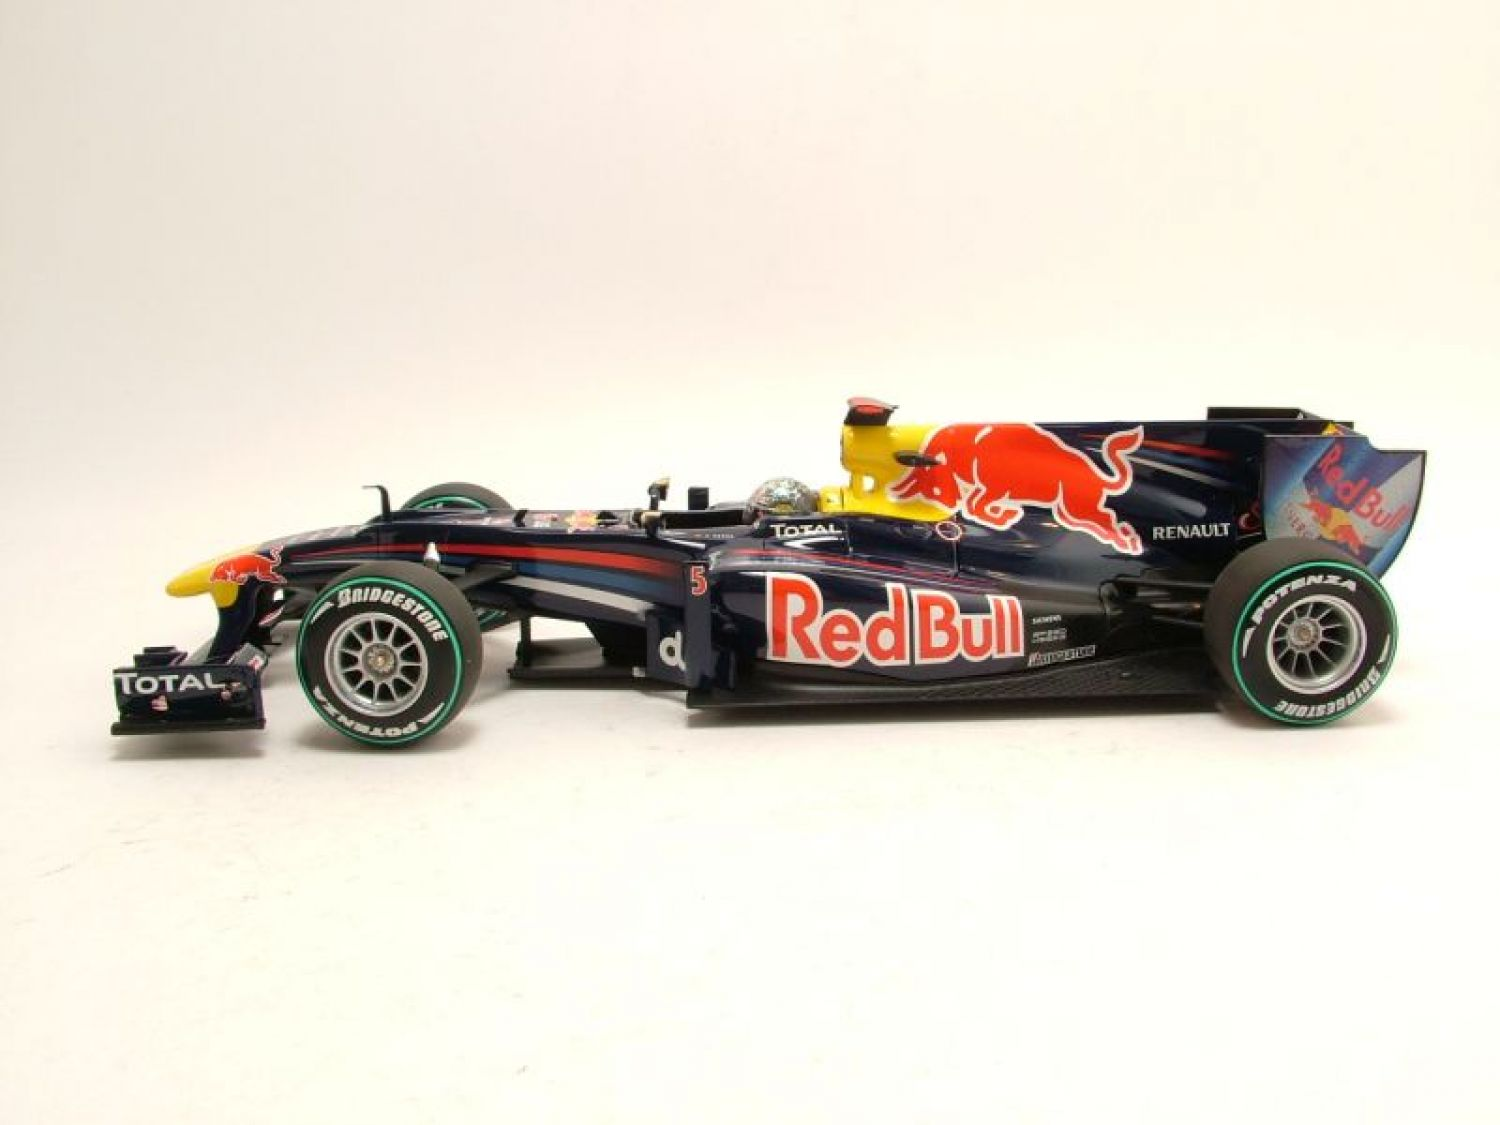 renault red bull vettel rb6 abu dhabi gp 2010 formel1 modellauto 1 18 minichamps ebay. Black Bedroom Furniture Sets. Home Design Ideas